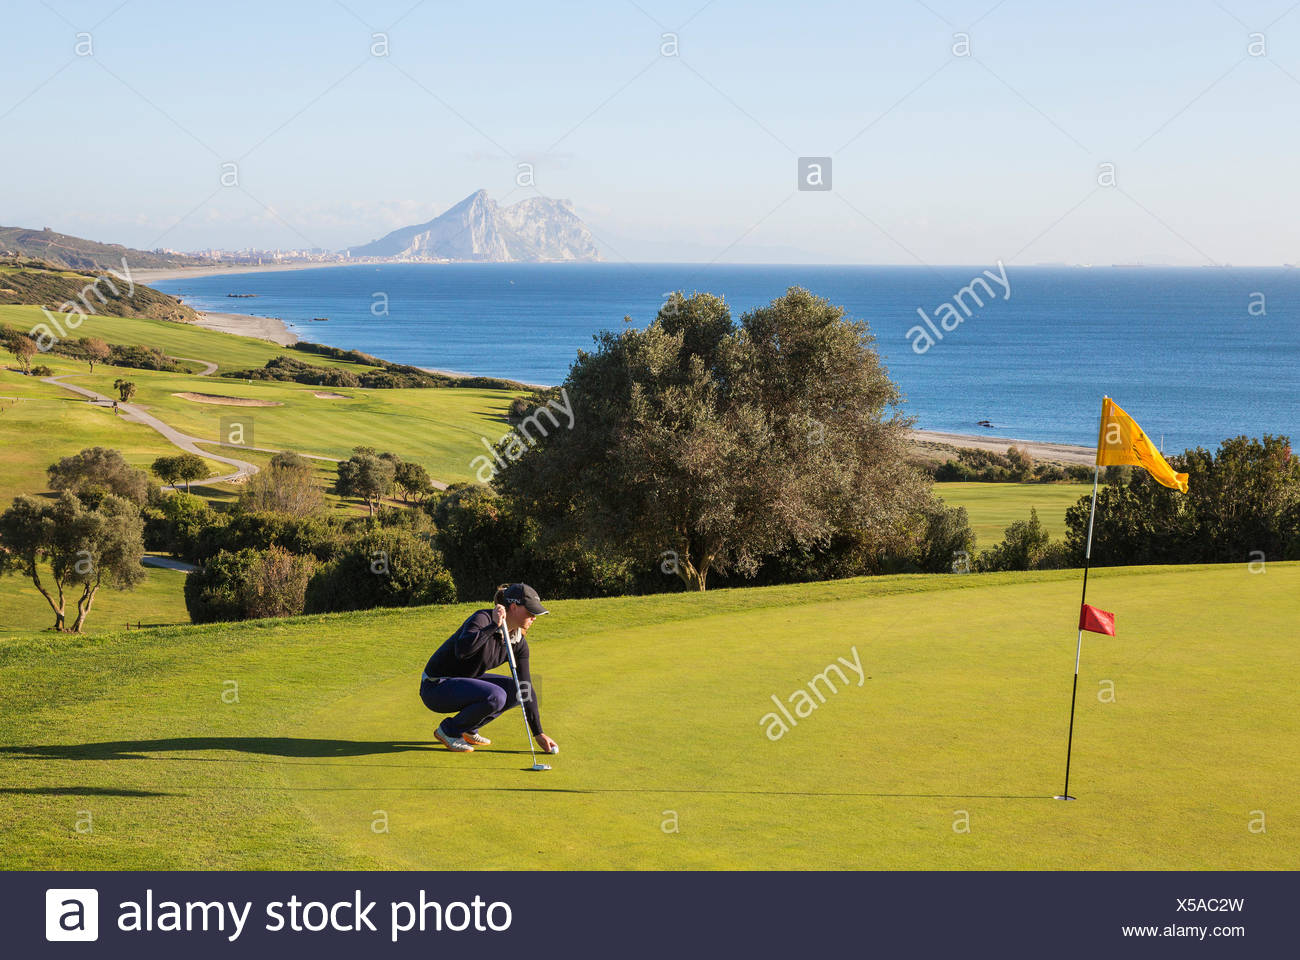 Golfer on putting green, La Alcaidesa Golf Resort with Mediterranean Sea and Rock of Gibraltar, Cádiz, Andalusia, Spain - Stock Image